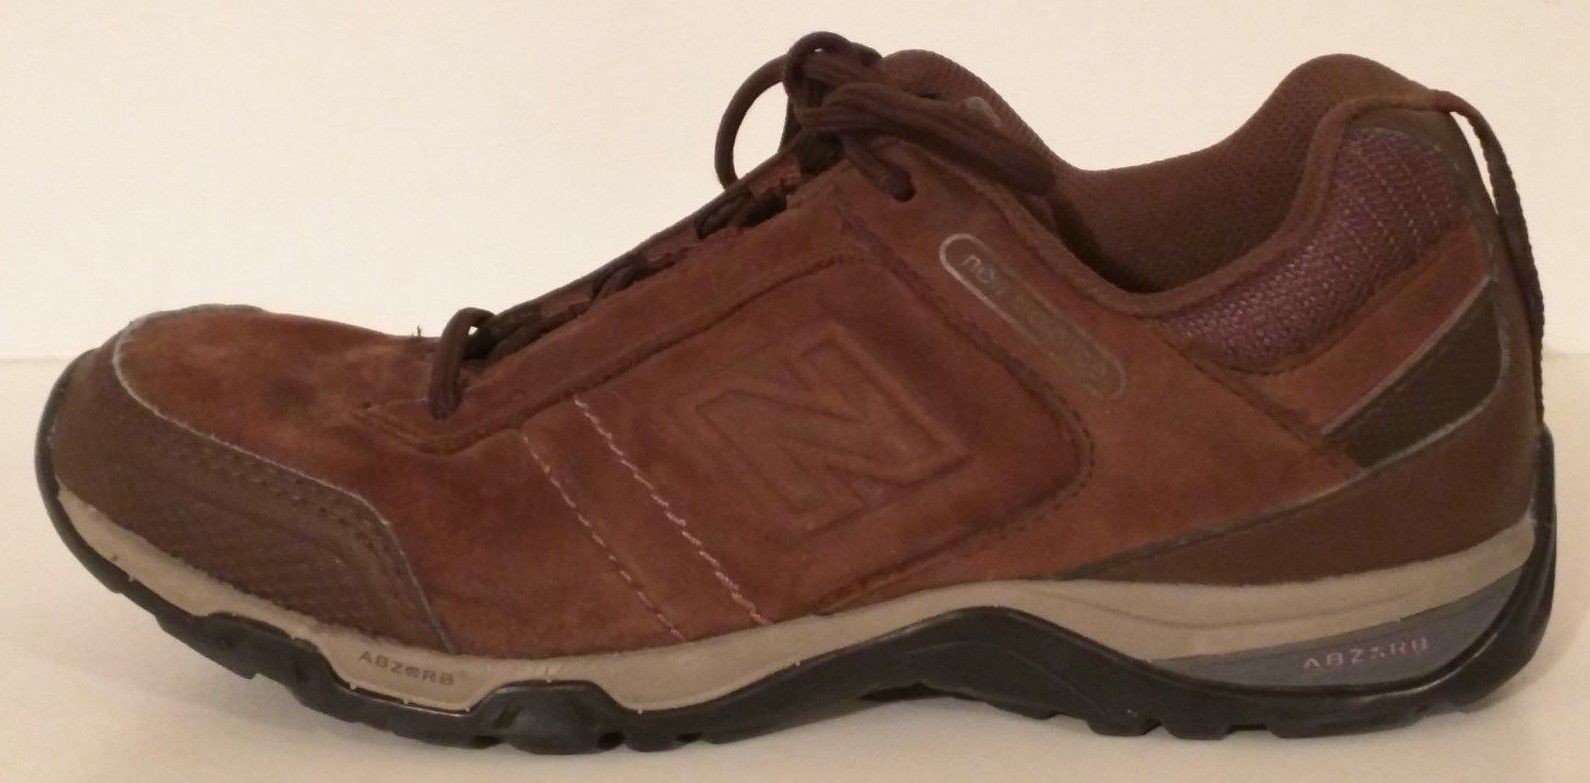 NEW BALANCE ABZORB WWW628BR - Brown Leather Walking Shoes - Women's Size: 6 - $69.41